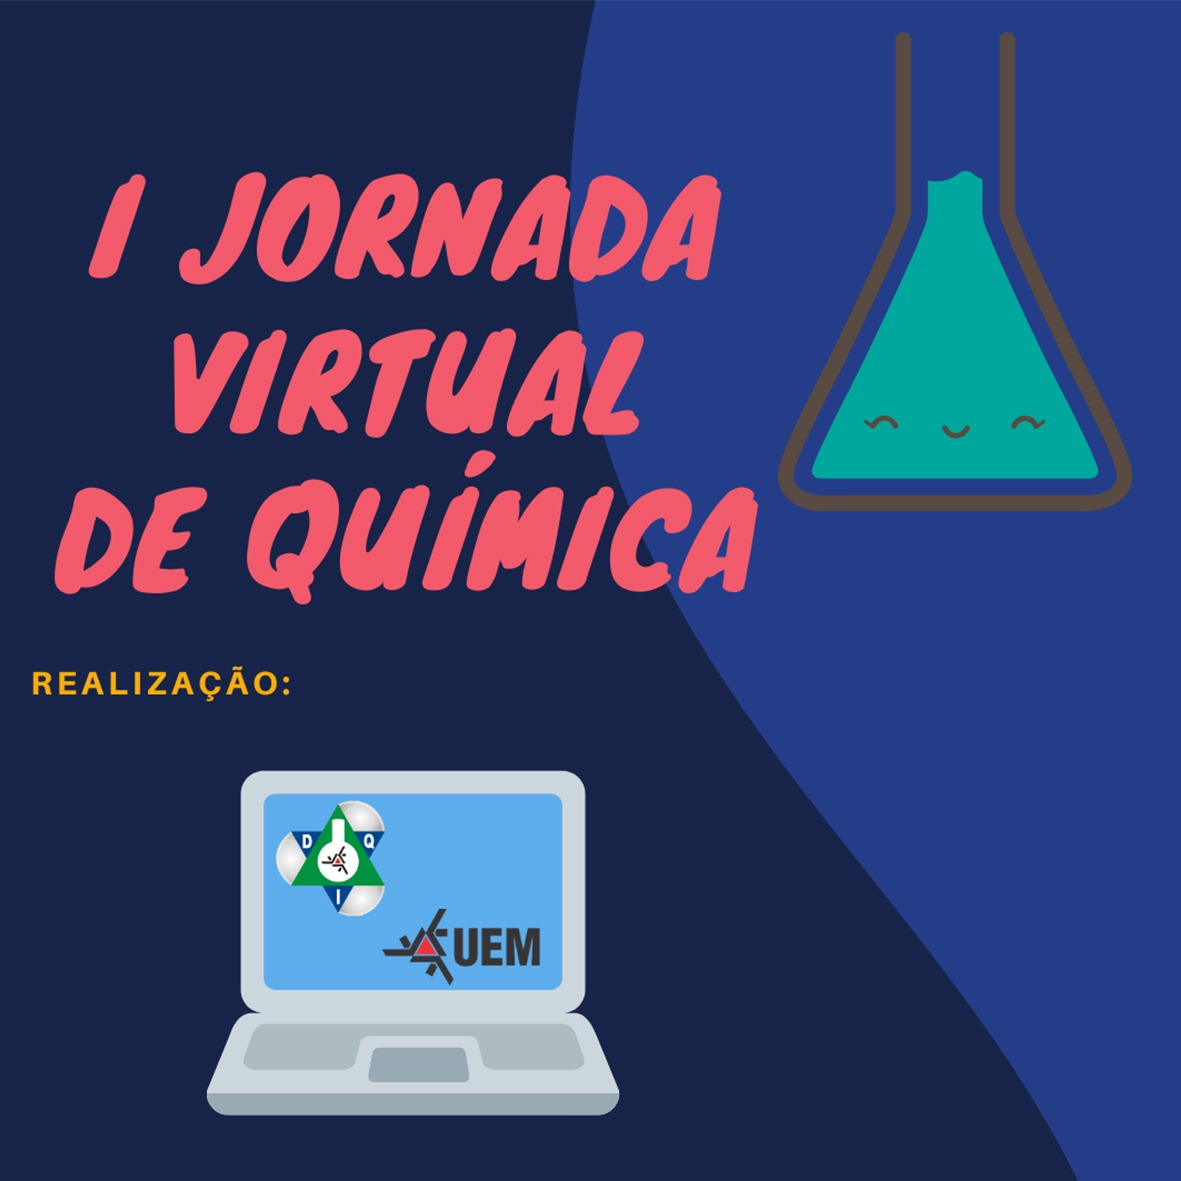 logo jornada virtual